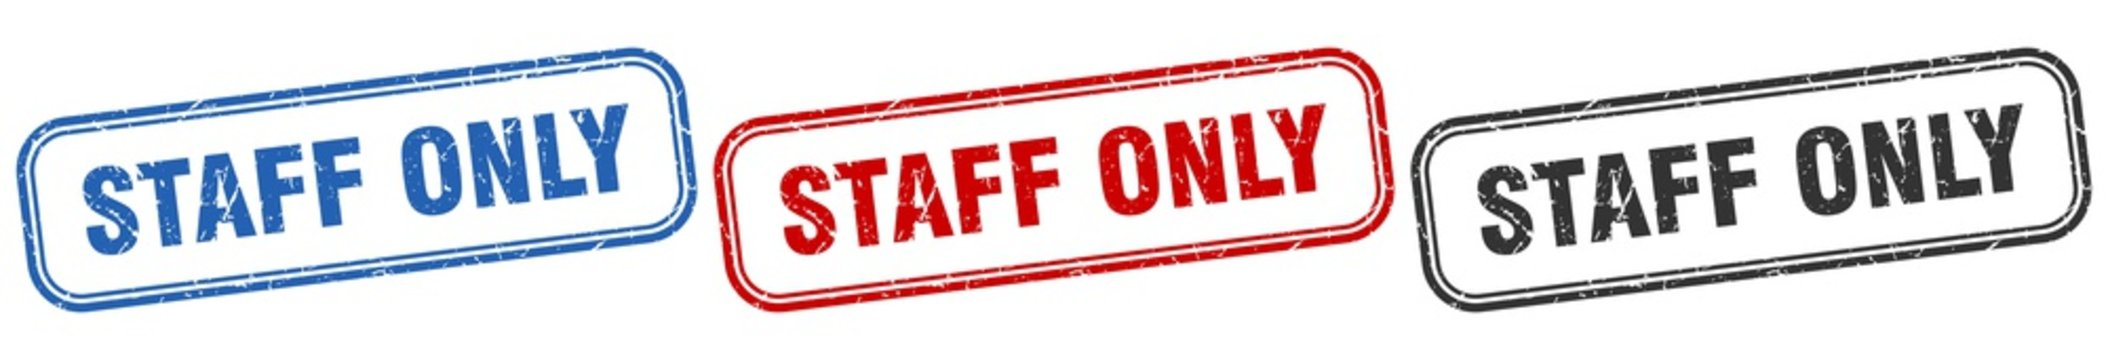 staff only square isolated sign set. staff only stamp